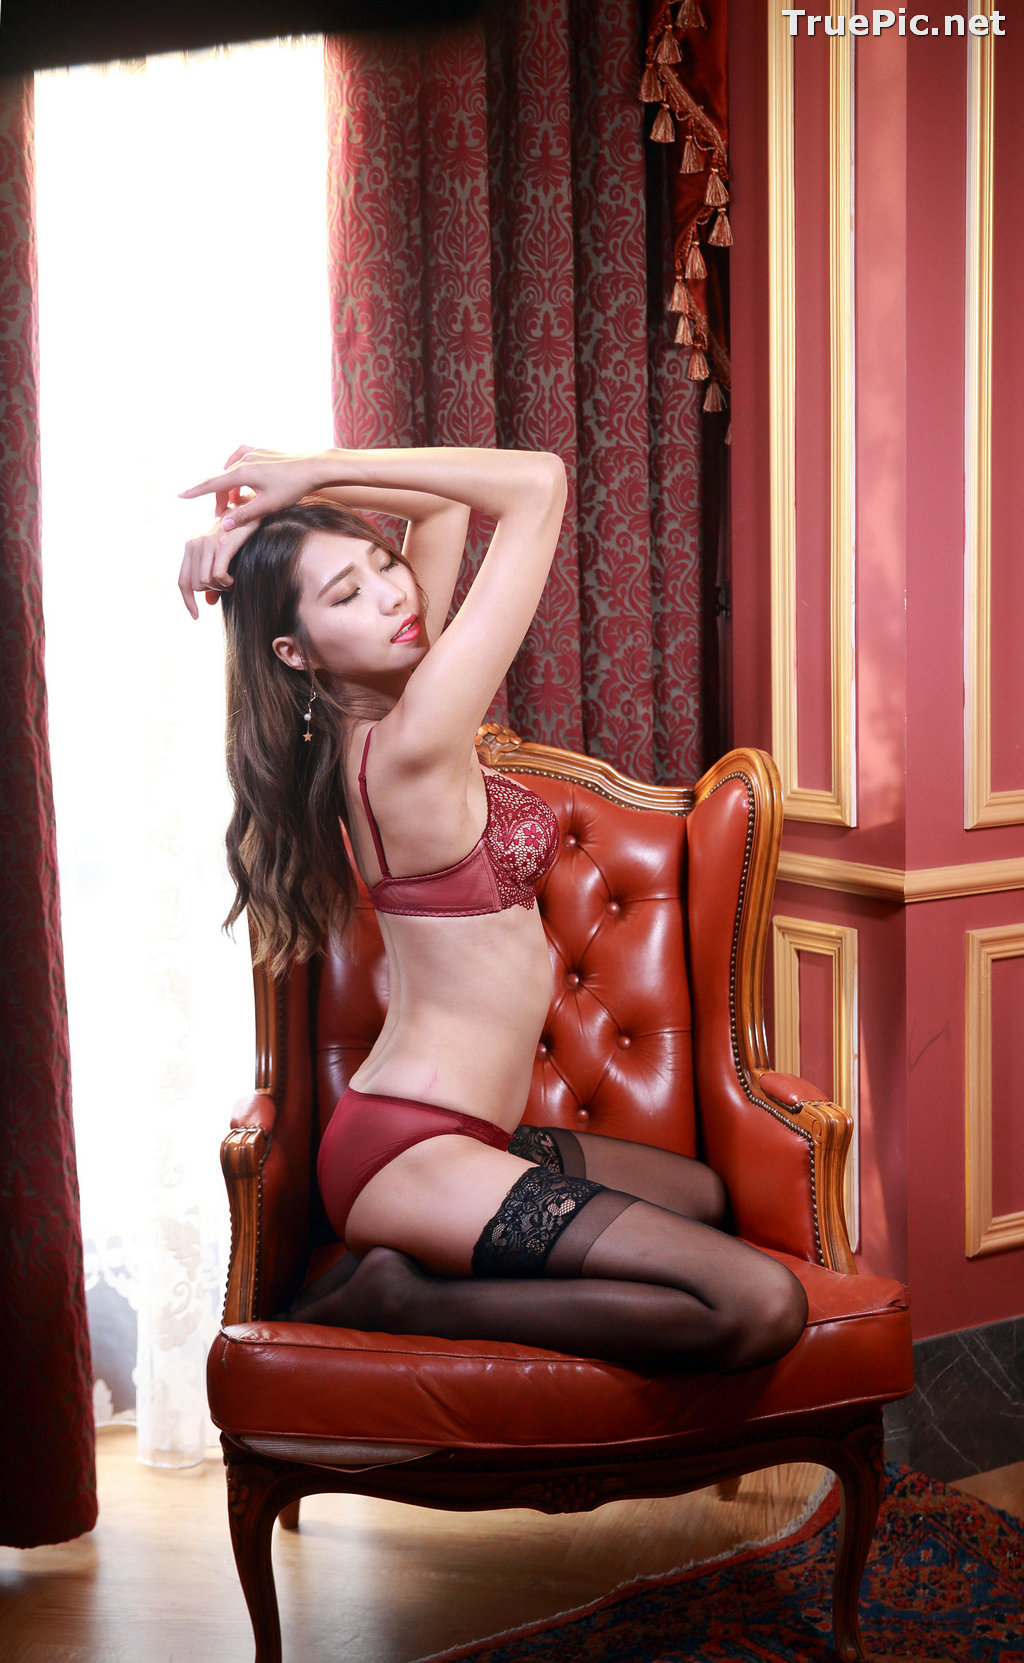 Image Taiwanese Long Legs Model - 黃韻斐 - Sexy Girl In Lingerie At Room - TruePic.net - Picture-6